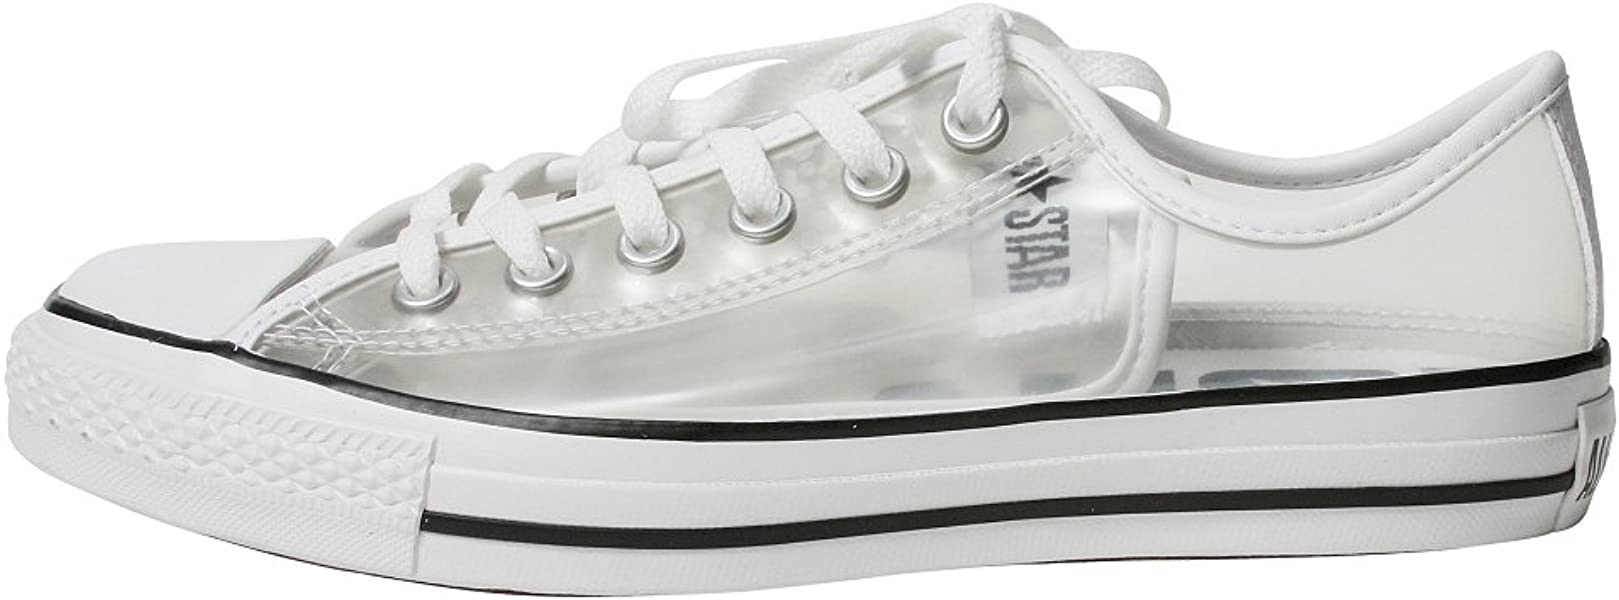 guide taille converse all star femme